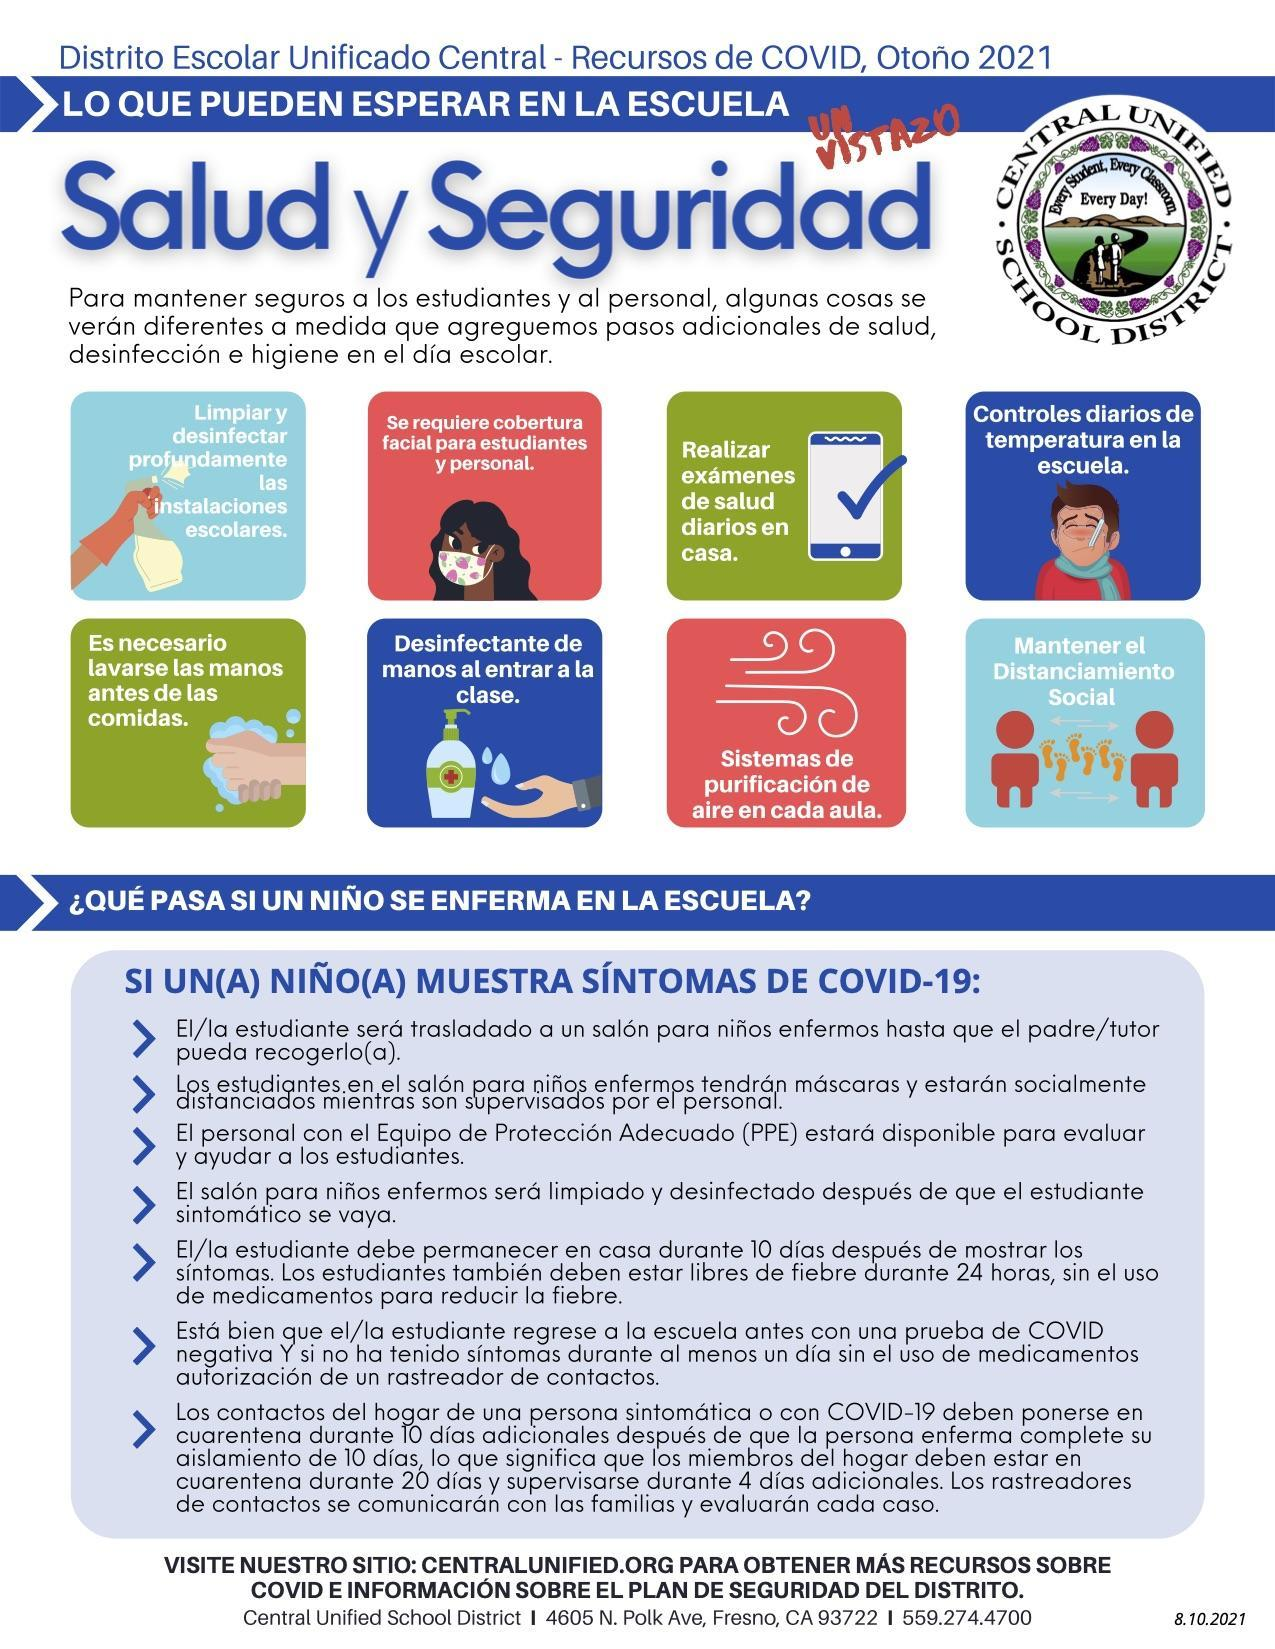 (Spanish) Health and Safety